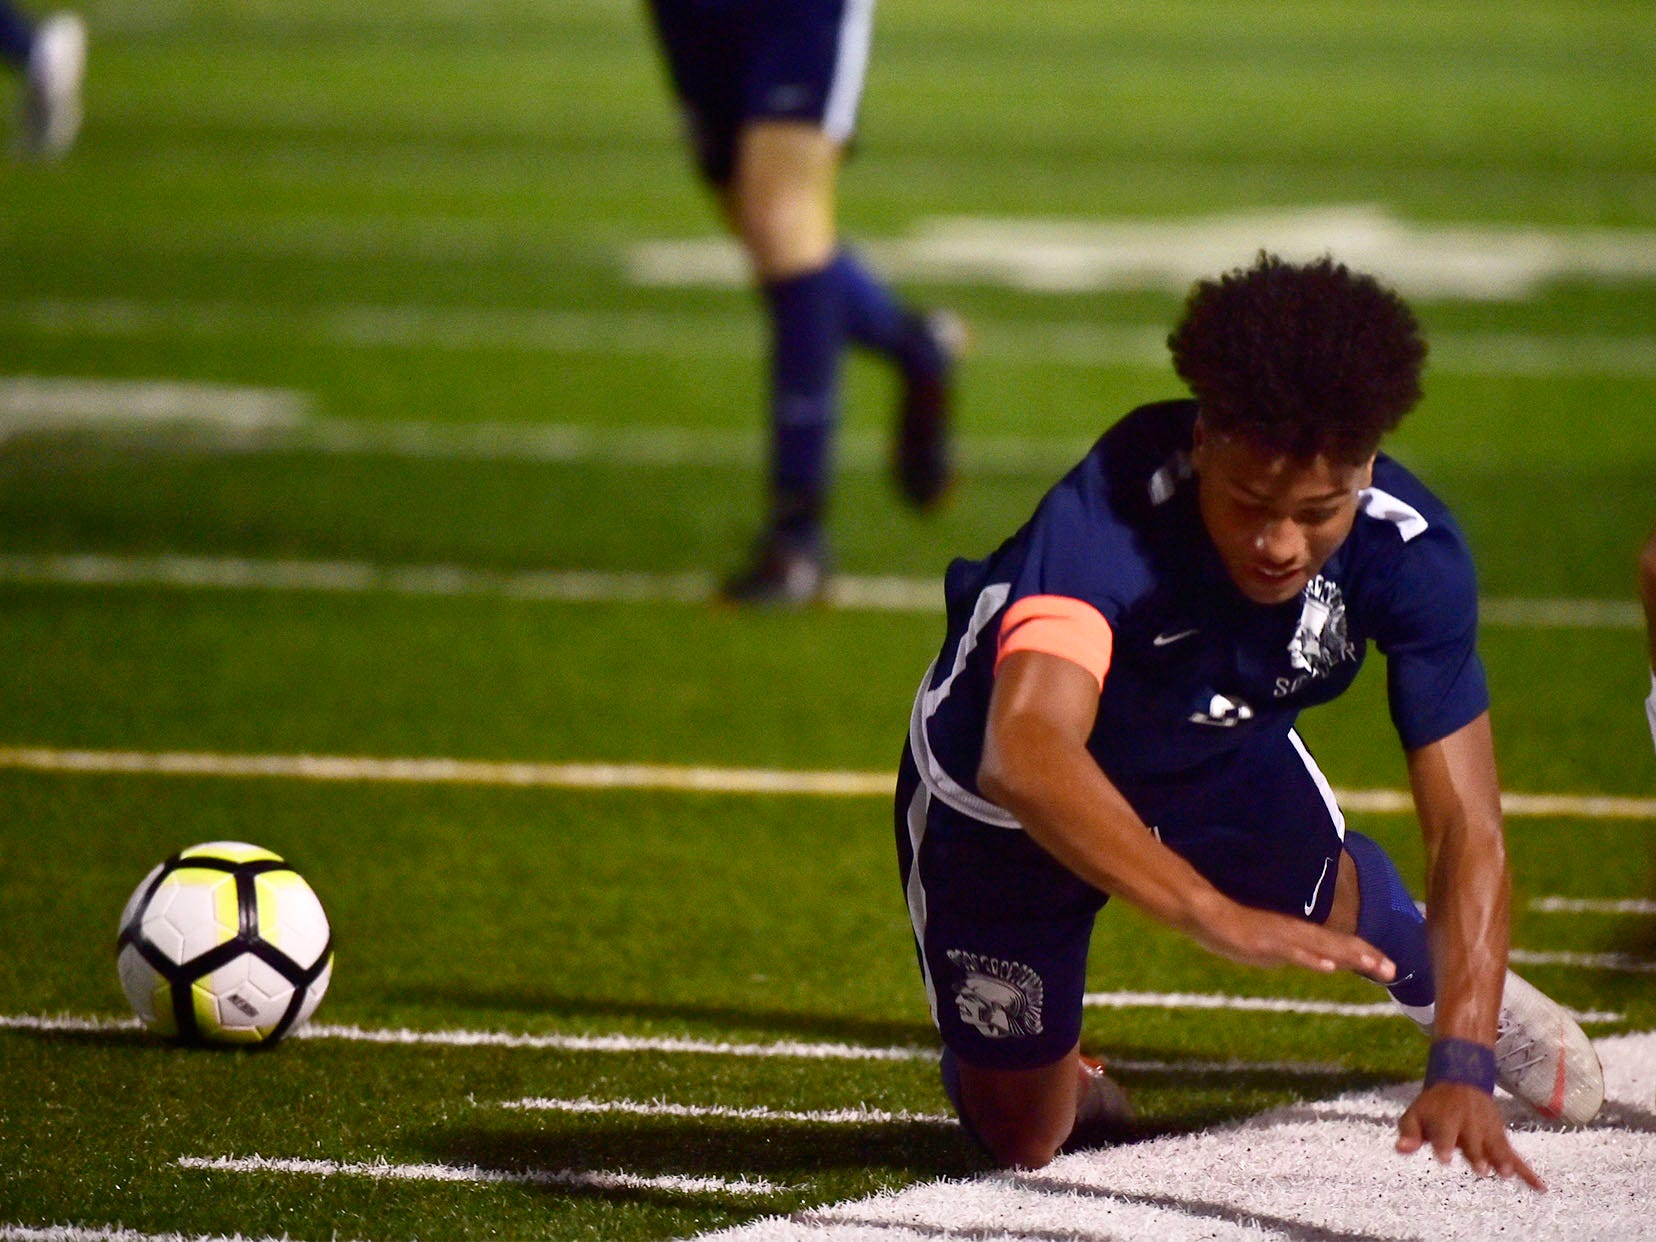 Chambersburg's Ebe Hewitt goes to the ground while chasing the ball. Chambersburg hosted Cumberland Valley in PIAA soccer on Thursday, Oct. 4, 2018, but dropped a 2-1 match in double overtime.